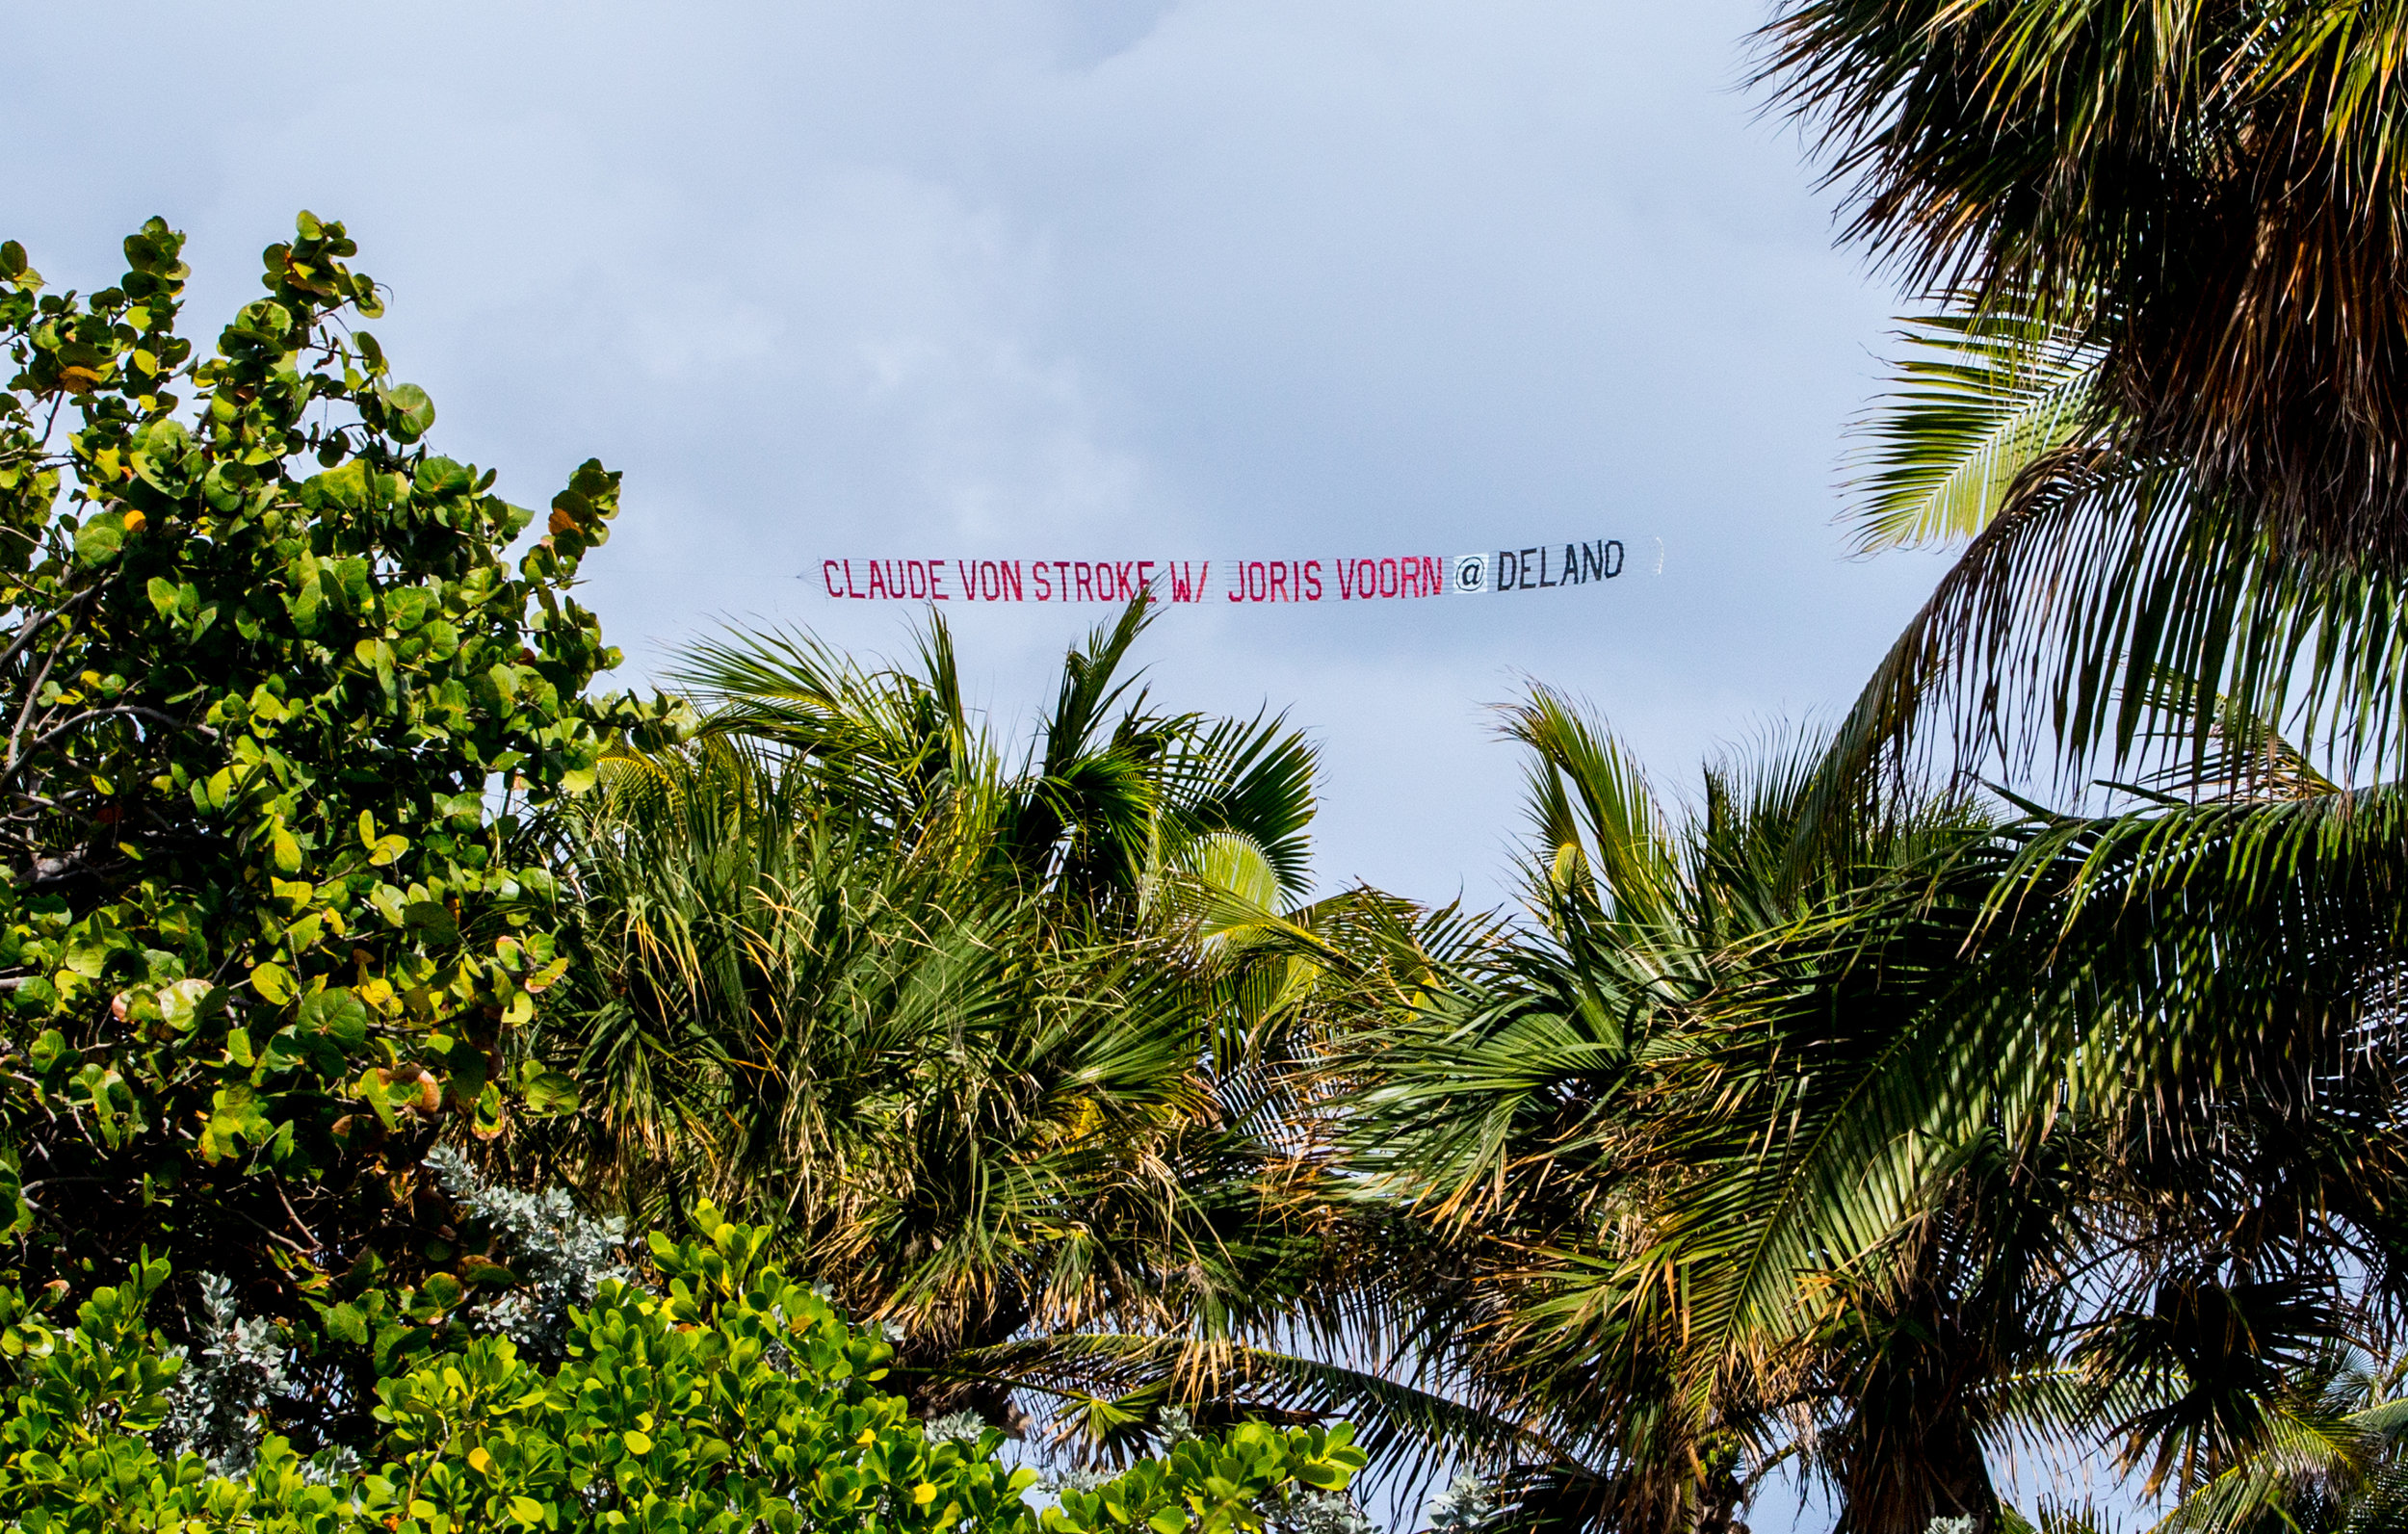 This is the Miami version of seeing your name in lights.